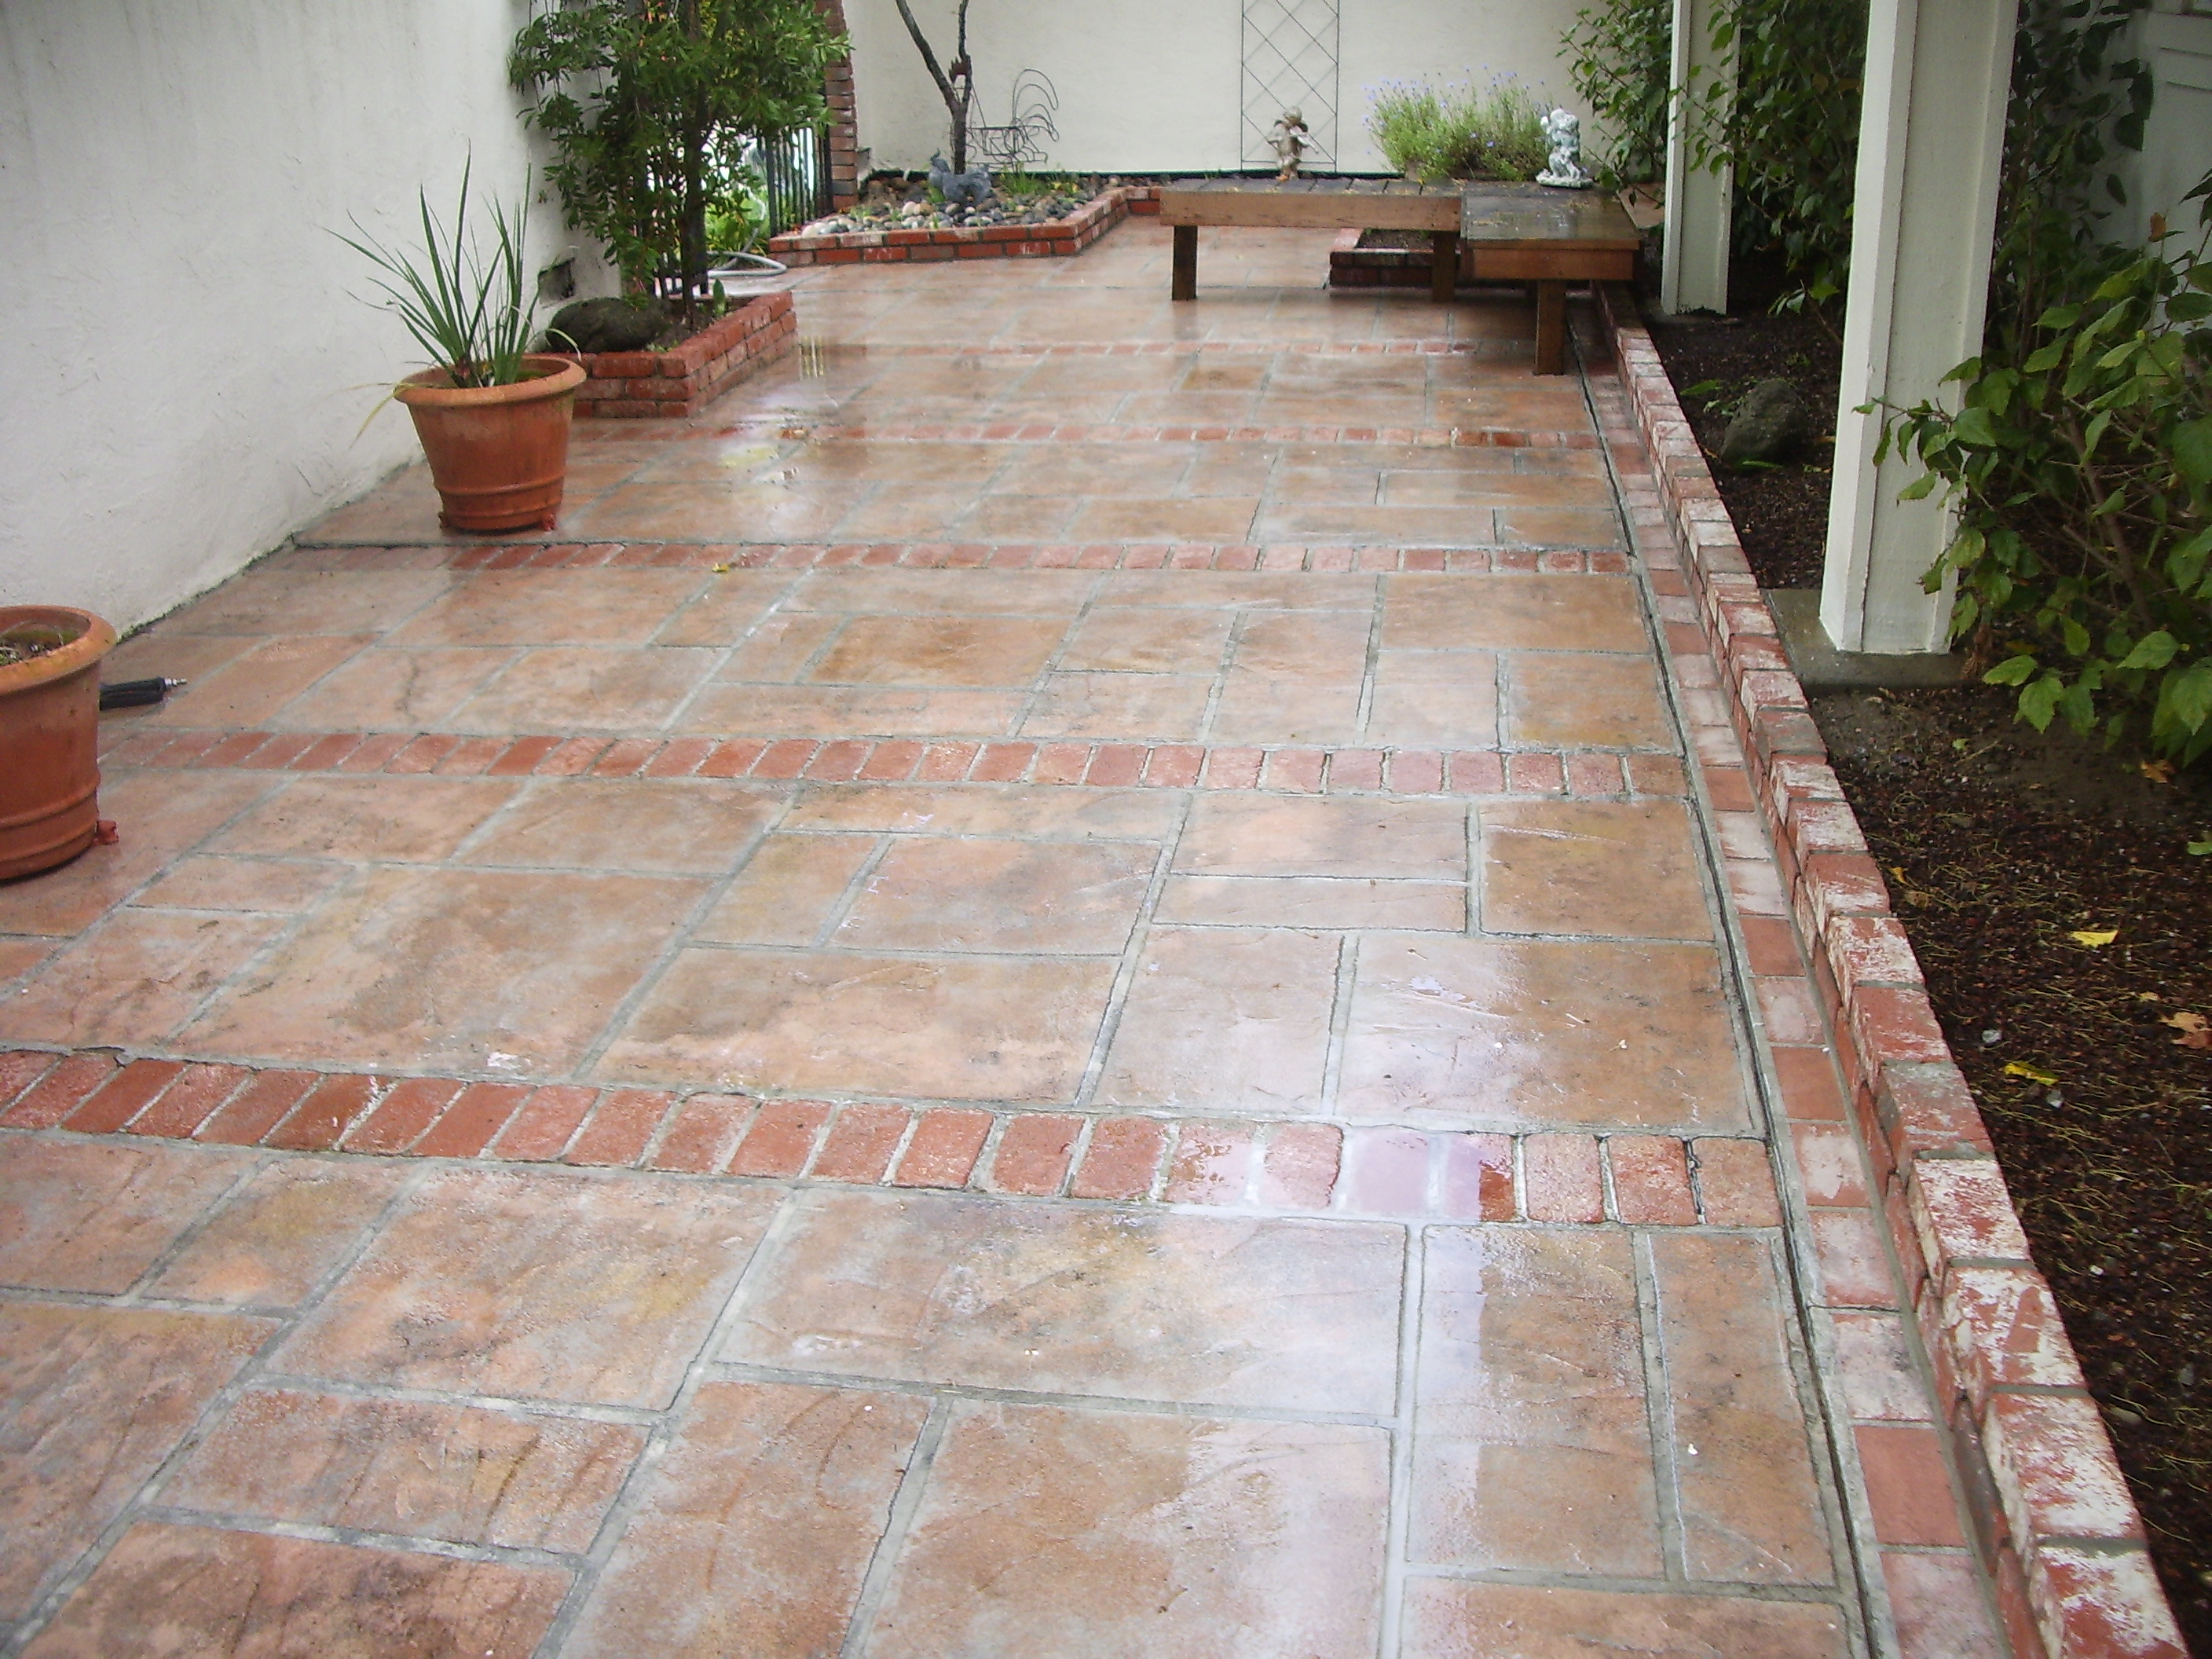 Tags: Clean Flagstone Patio, Hire A Pressure Wash Contractor, Power Wash In  Napa, Pressure Wash In Fairfield Ca, Pressure Wash In Napa, Pressure Wash  In ...